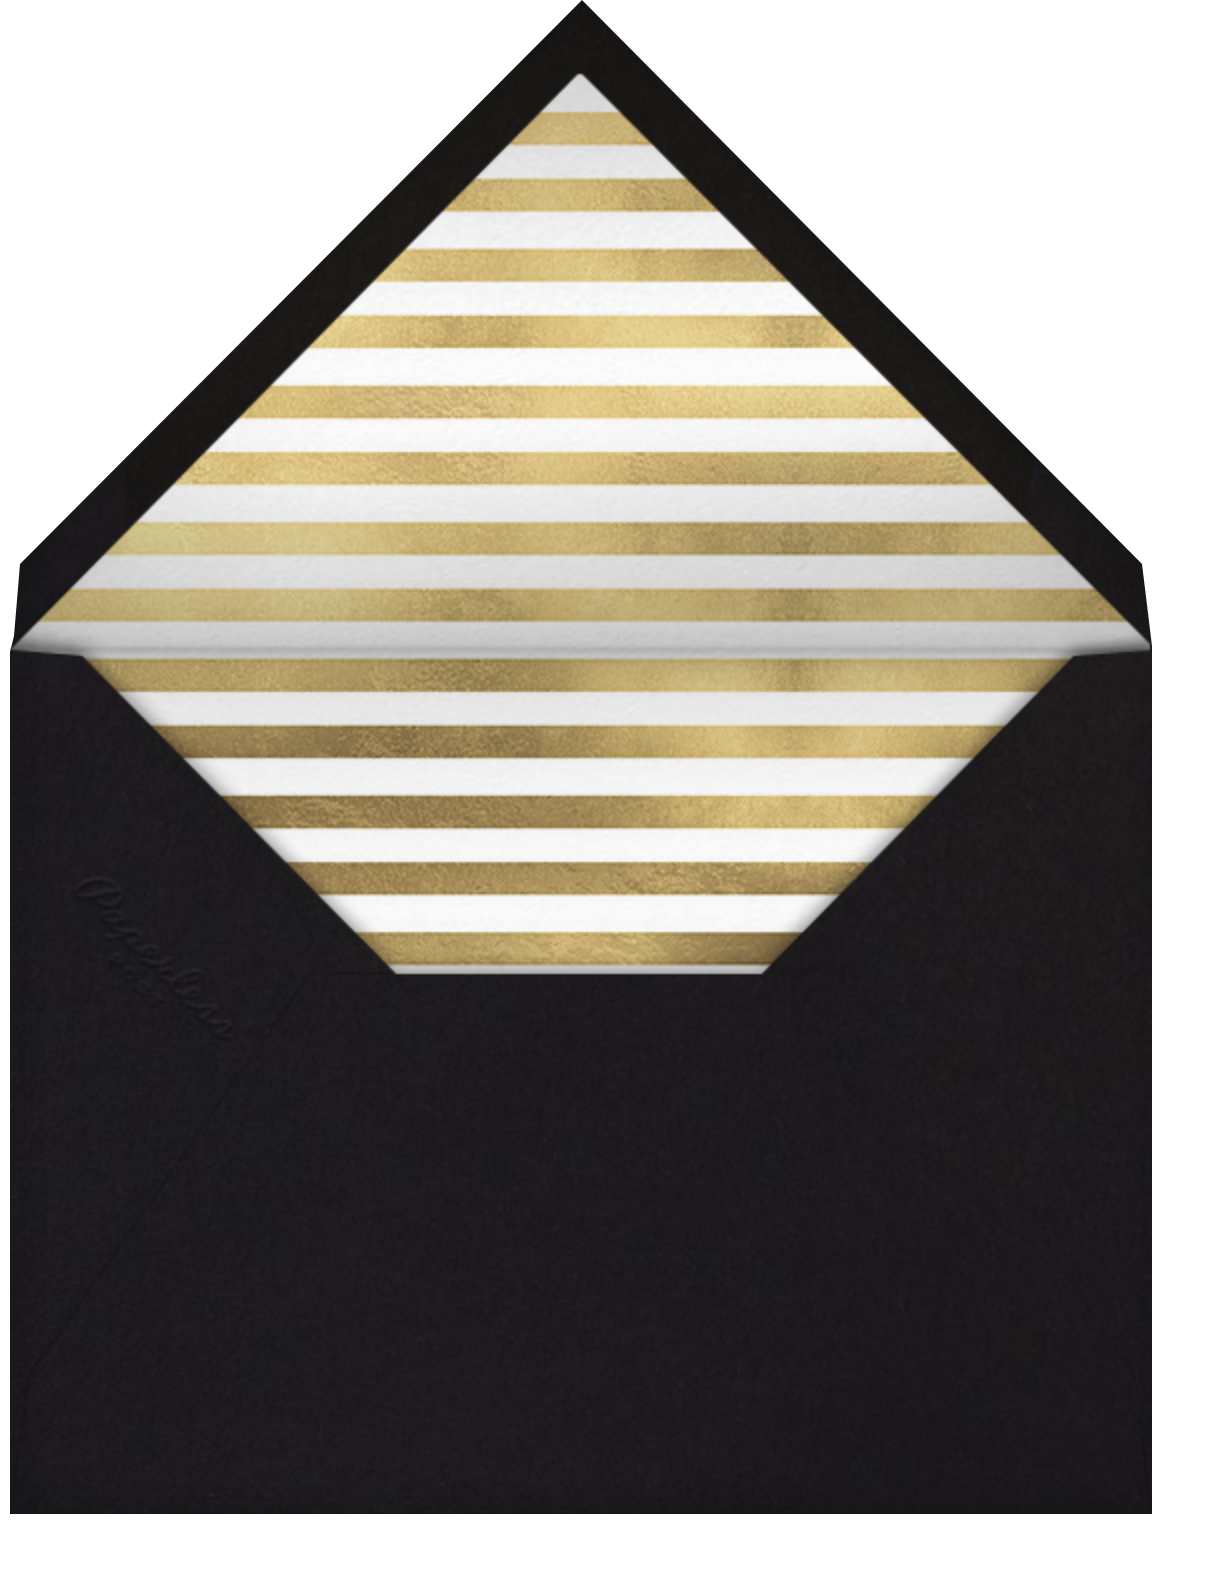 Person of the Year (Announcement) - Gold - Paperless Post - Envelope